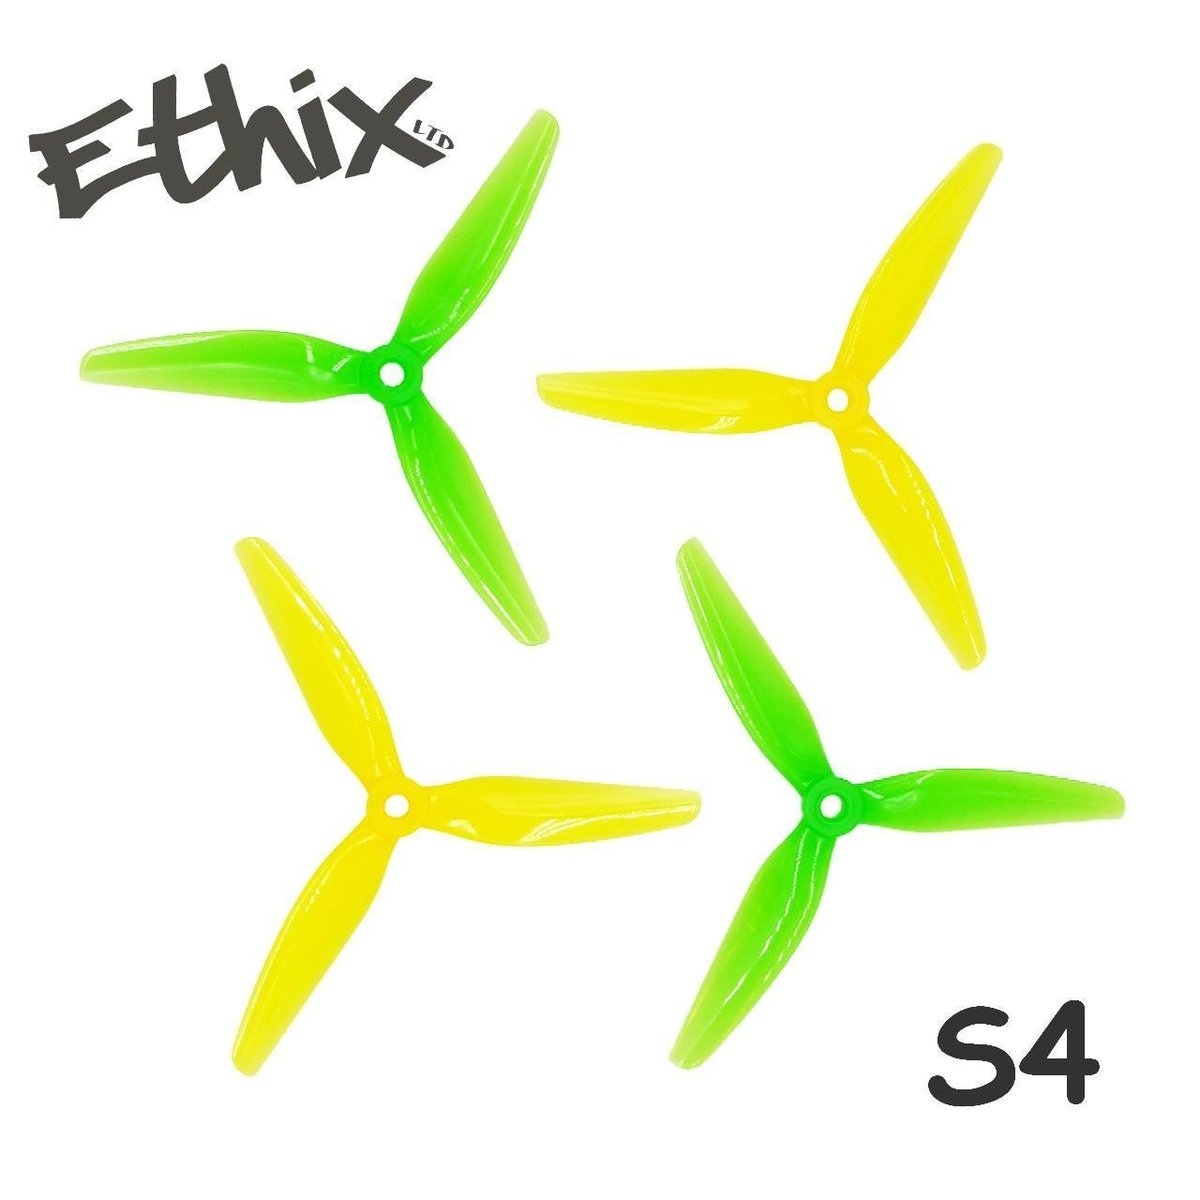 HQ <b>Ethix S4 Lemon</b> Propellers (2CW+2CCW)